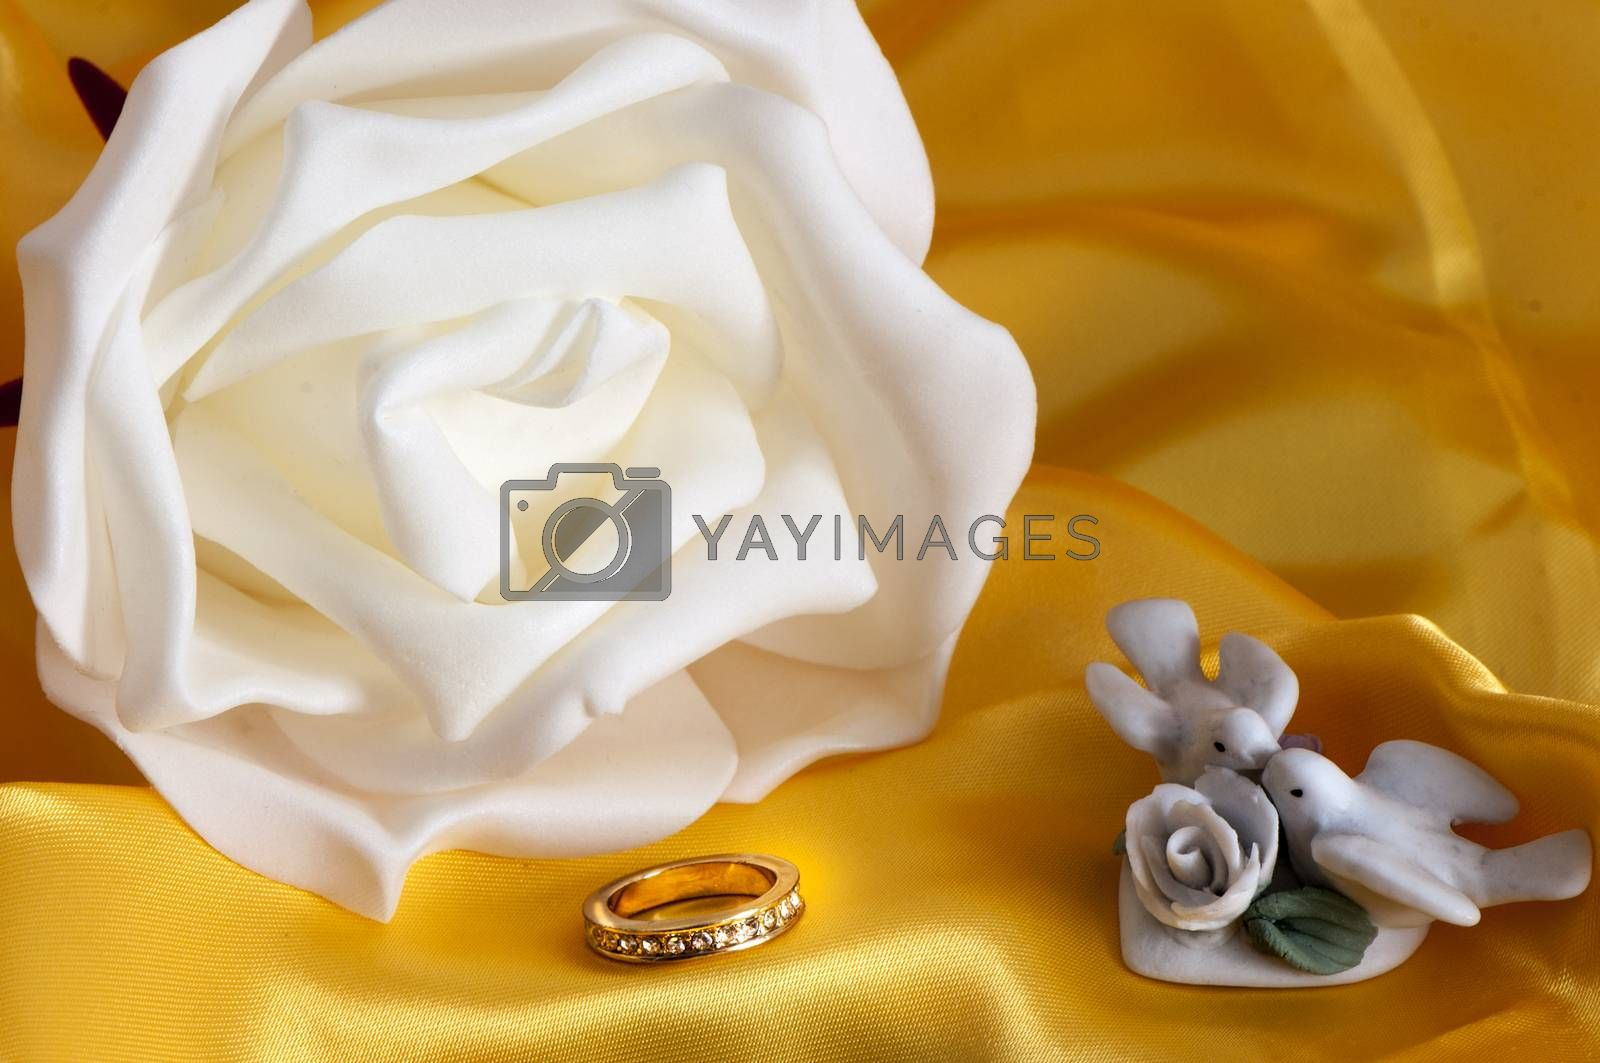 Royalty free image of  wedding rings on colorful fabric  by carla720